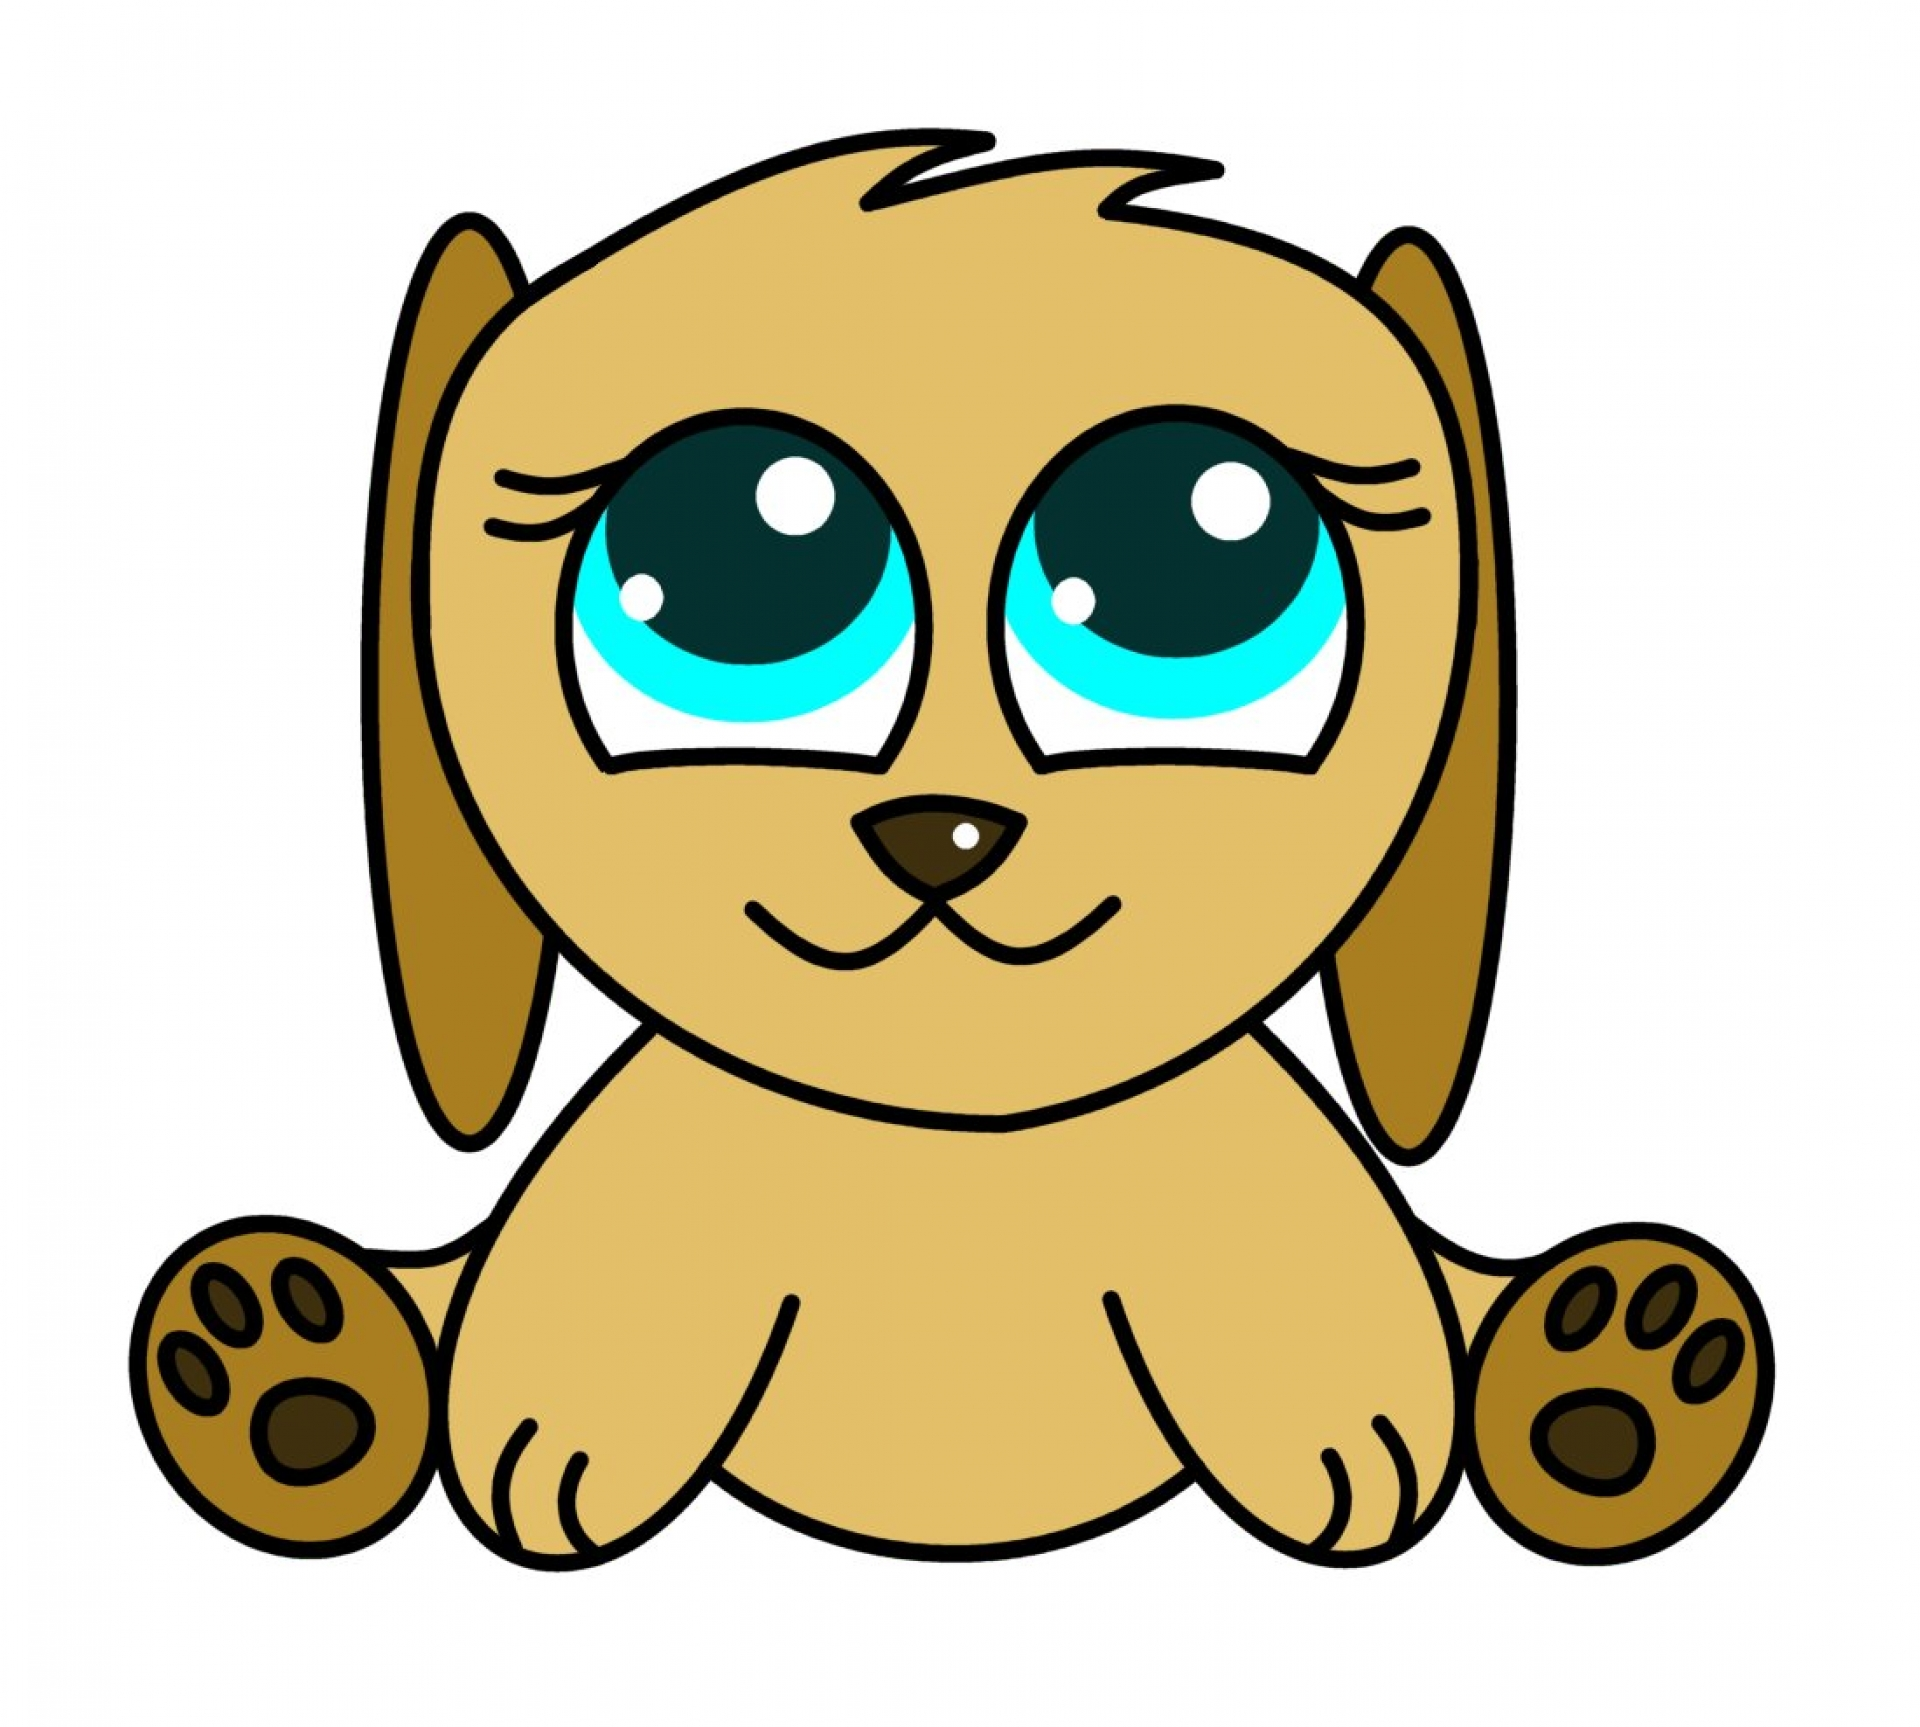 Puppy Cartoons Cute Cartoon Puppy Dogs Cute Cartoon Puppy Kids